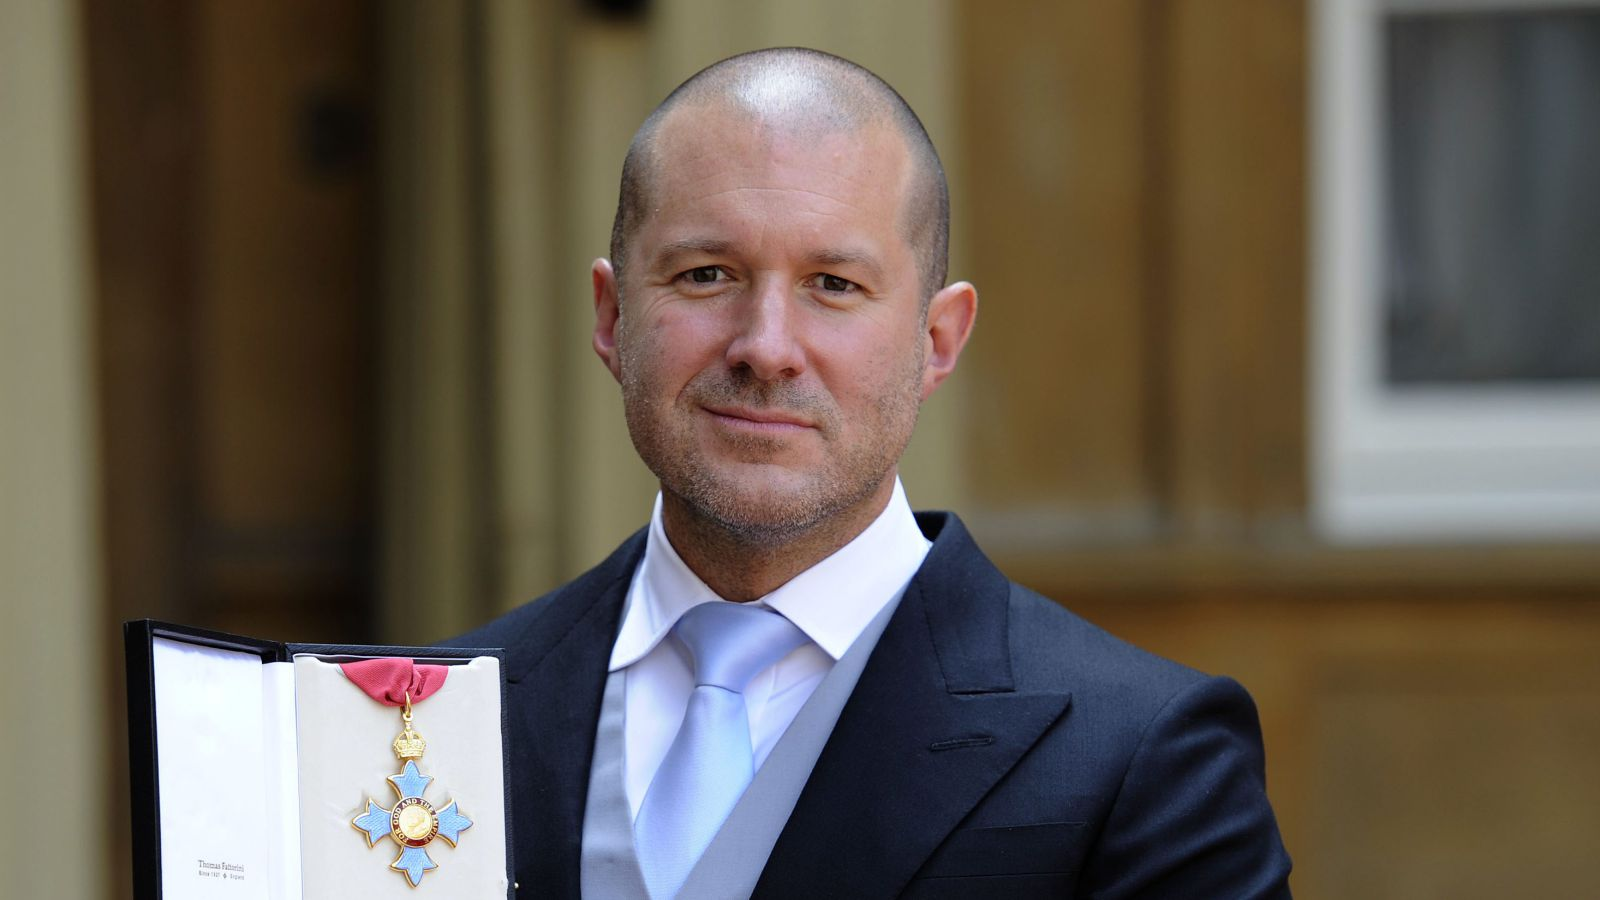 The Story of Sir Jony Ive's Apple Exit